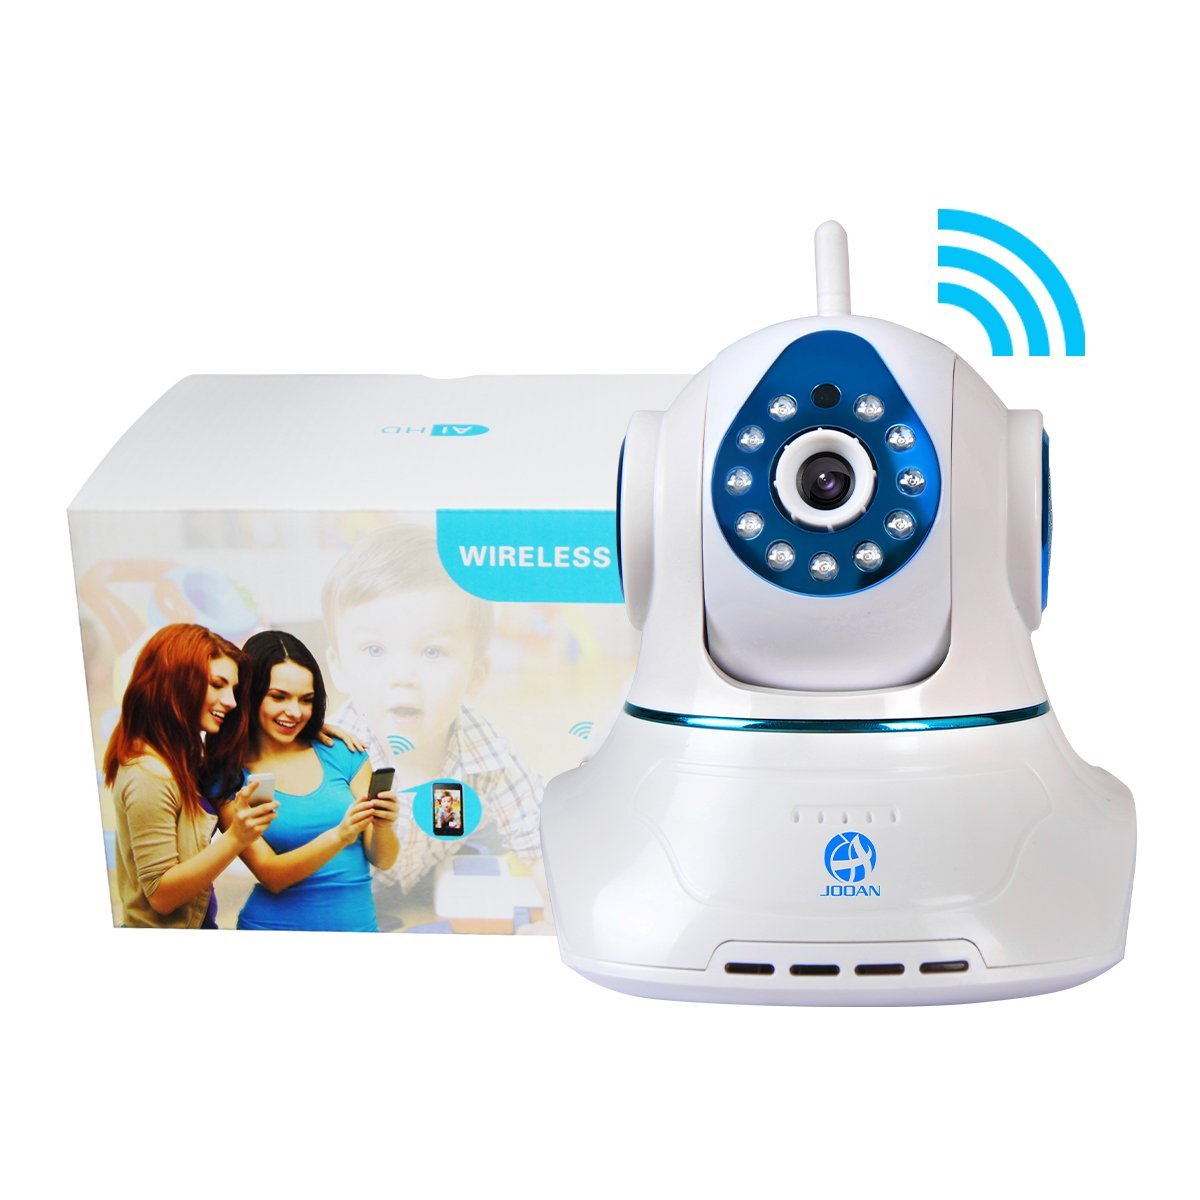 Jooan Wireless Security Systems